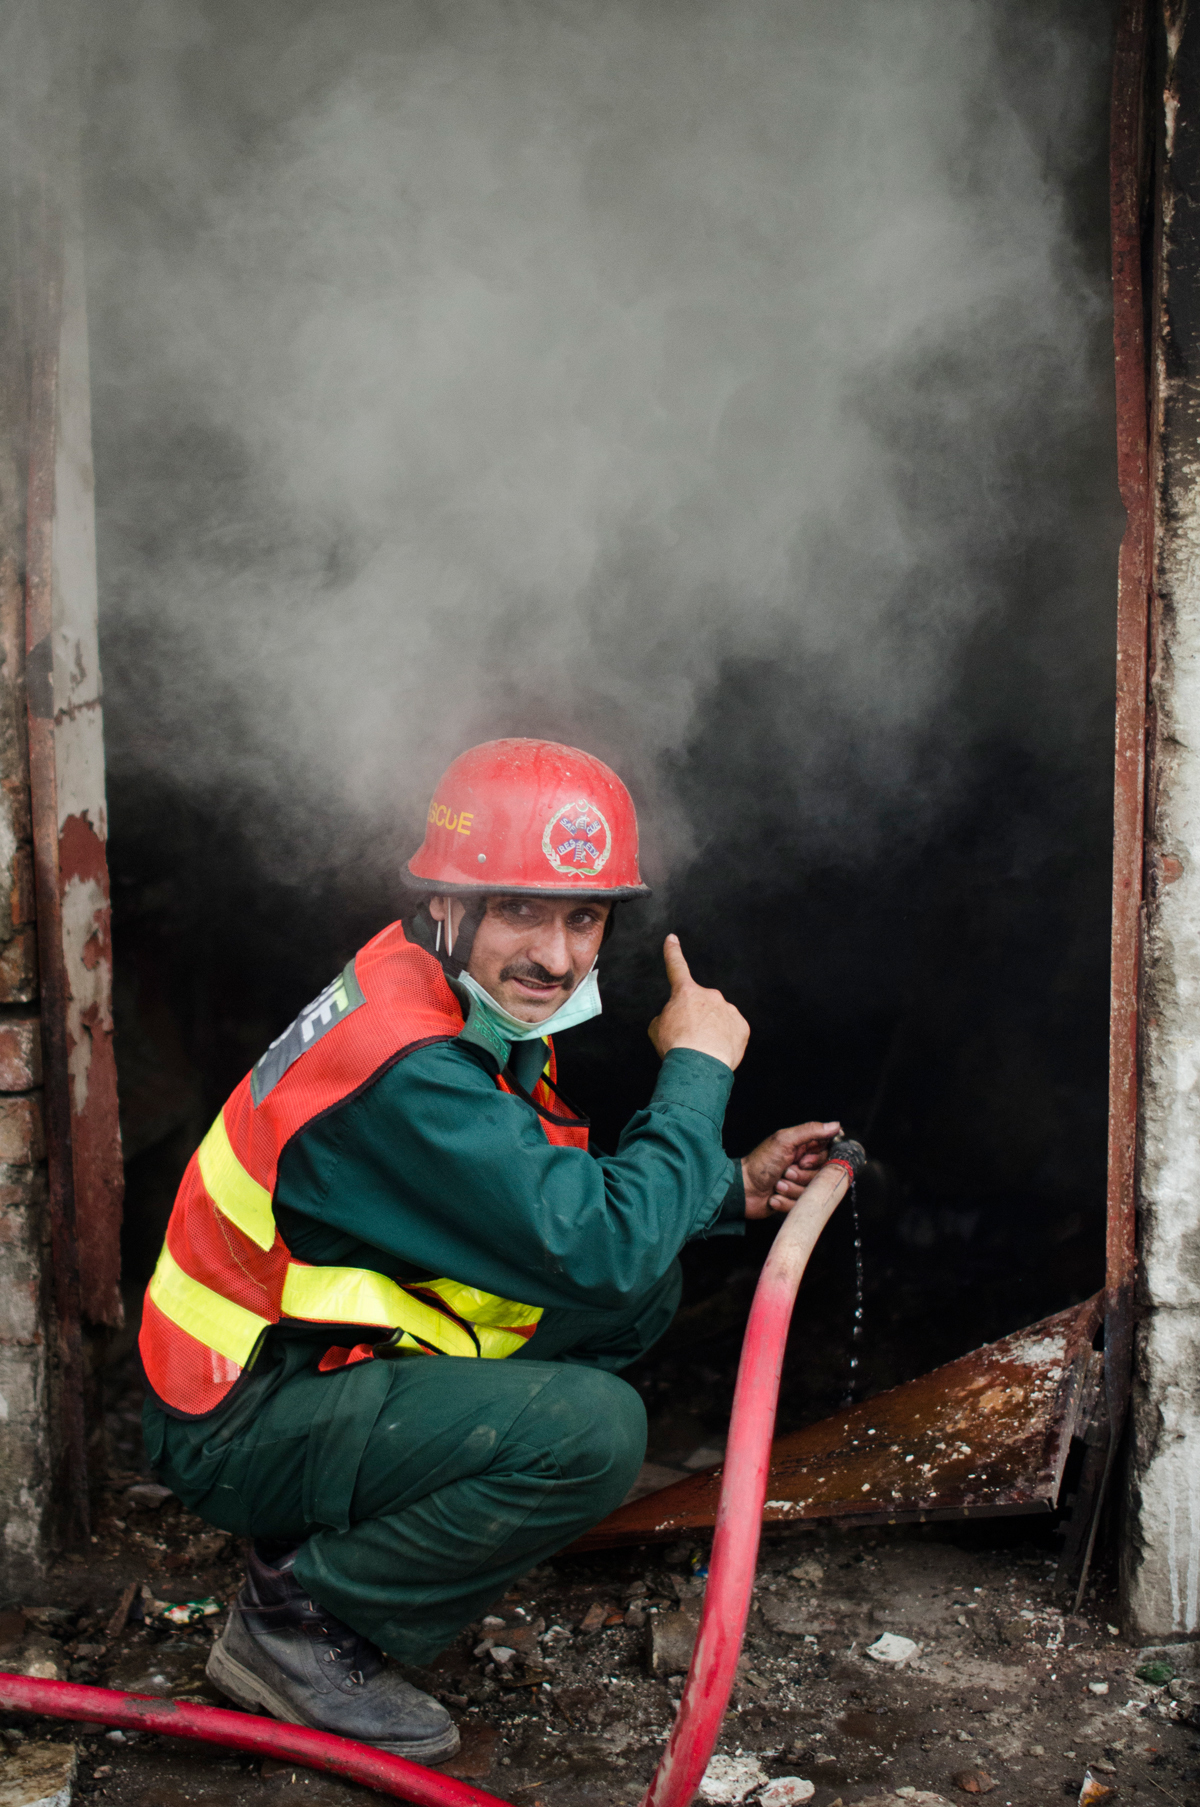 A firefighter in Joseph Colony, Lahore | Saad Sarfaraz